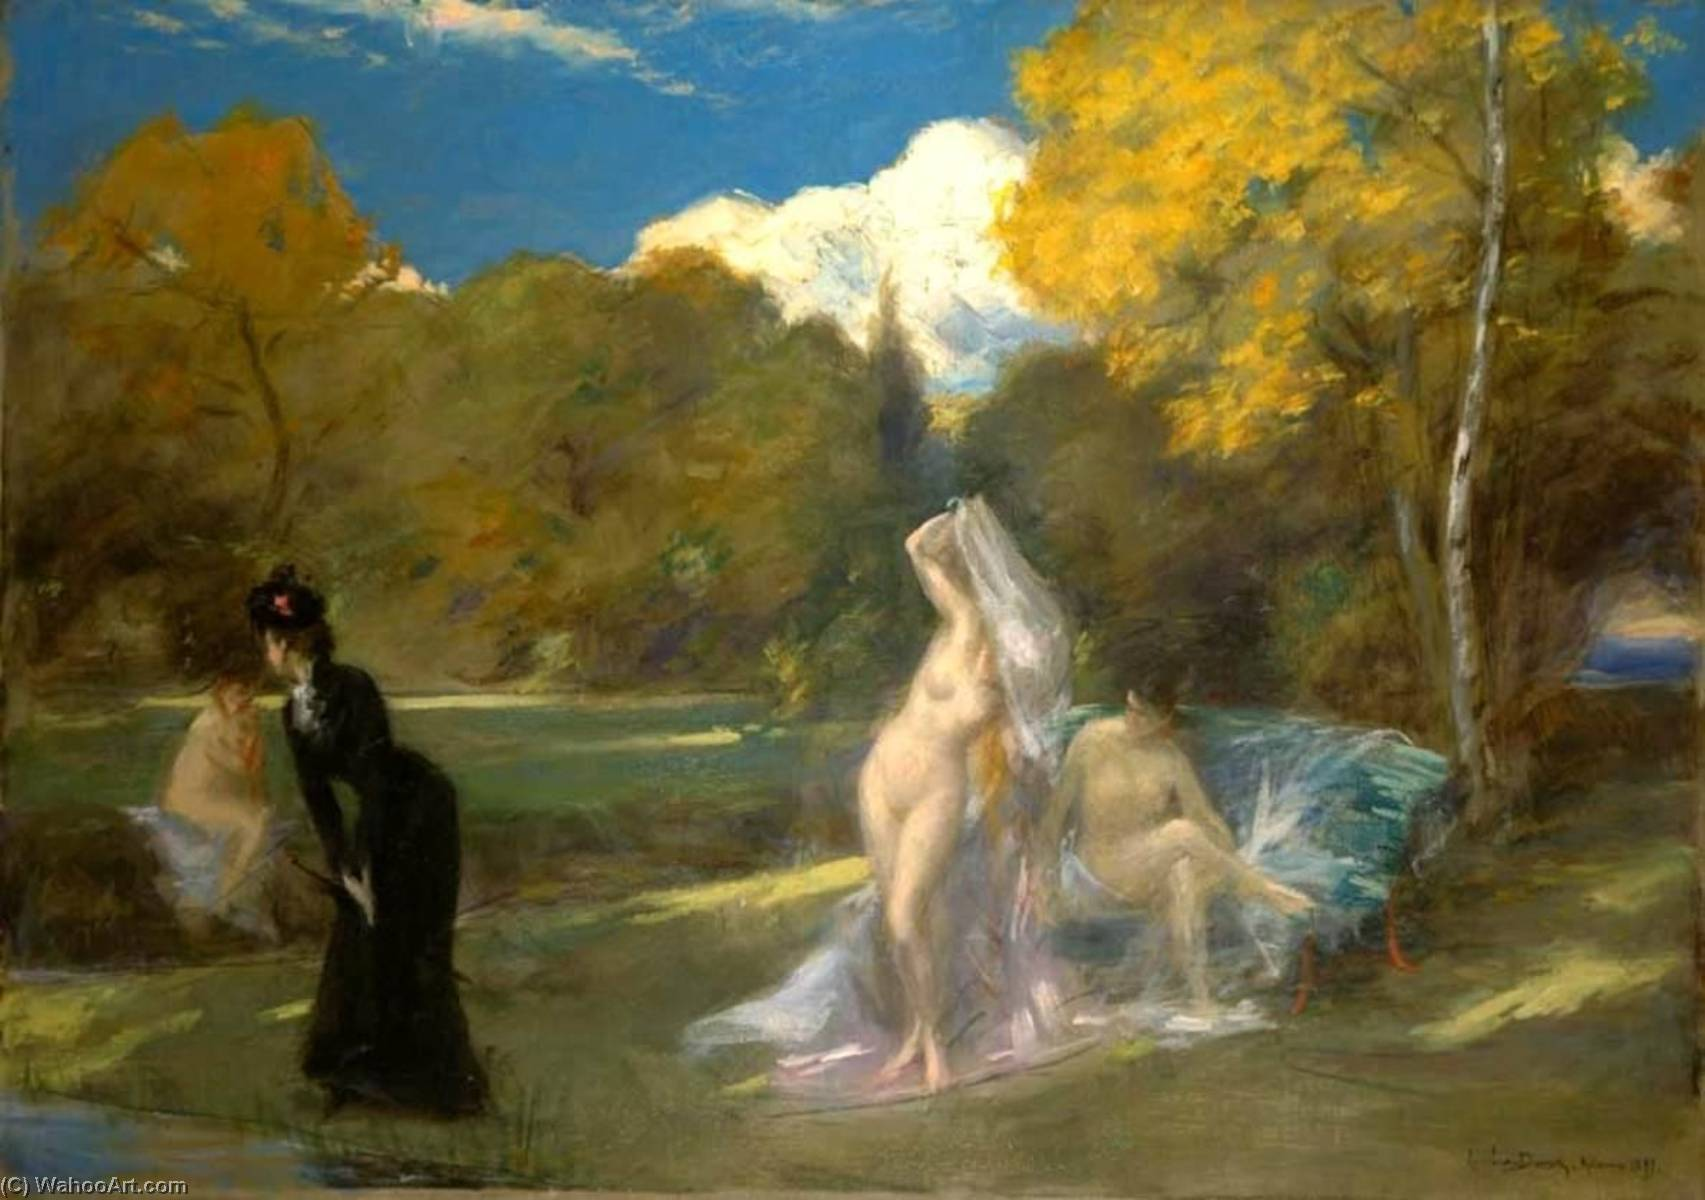 Order Paintings Reproductions | After the Swimming, 1899 by Carolus-Duran (Charles-Auguste-Emile Durand) | WahooArt.com